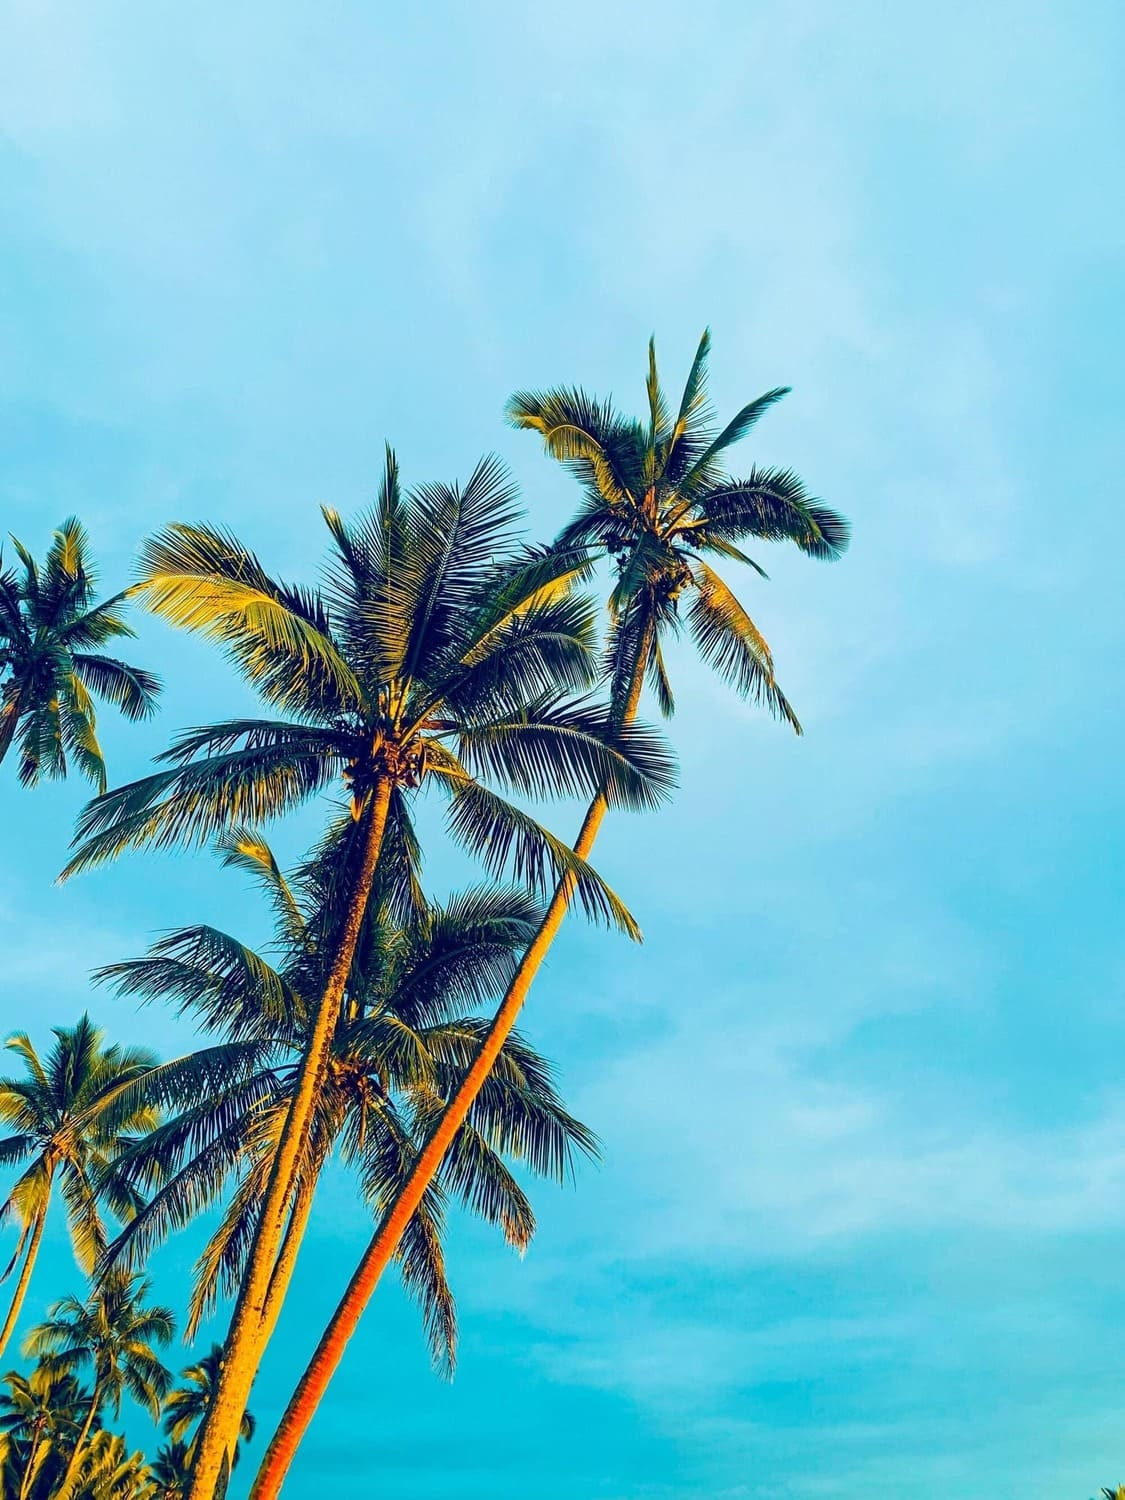 A tropical view of the palm trees on Fiji